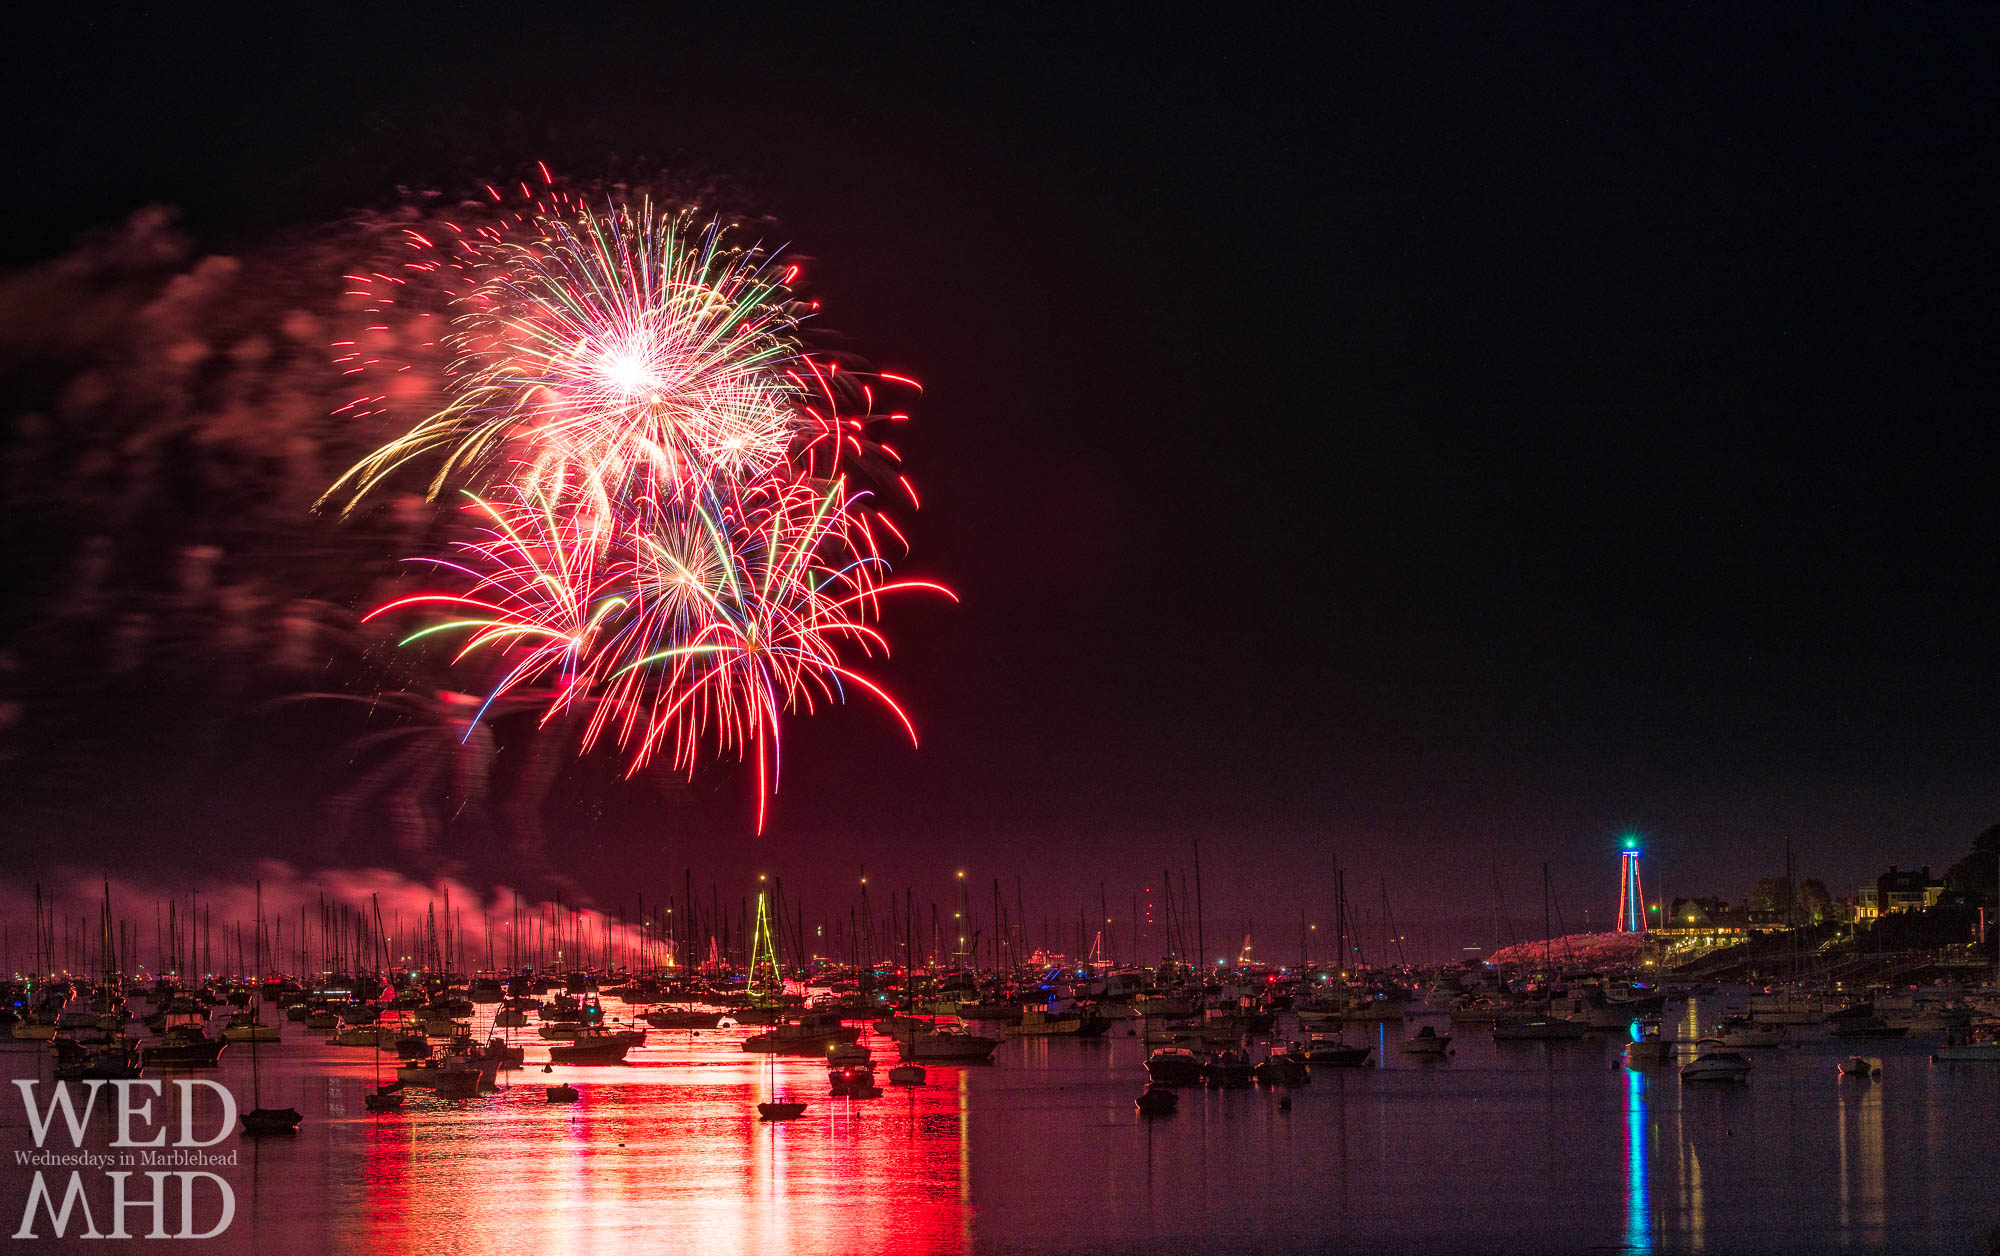 For only the second time in my last 12 years here, the Marblehead fireworks show has been cancelled. I'll miss seeing fireworks over the water with boats taking up every mooring.